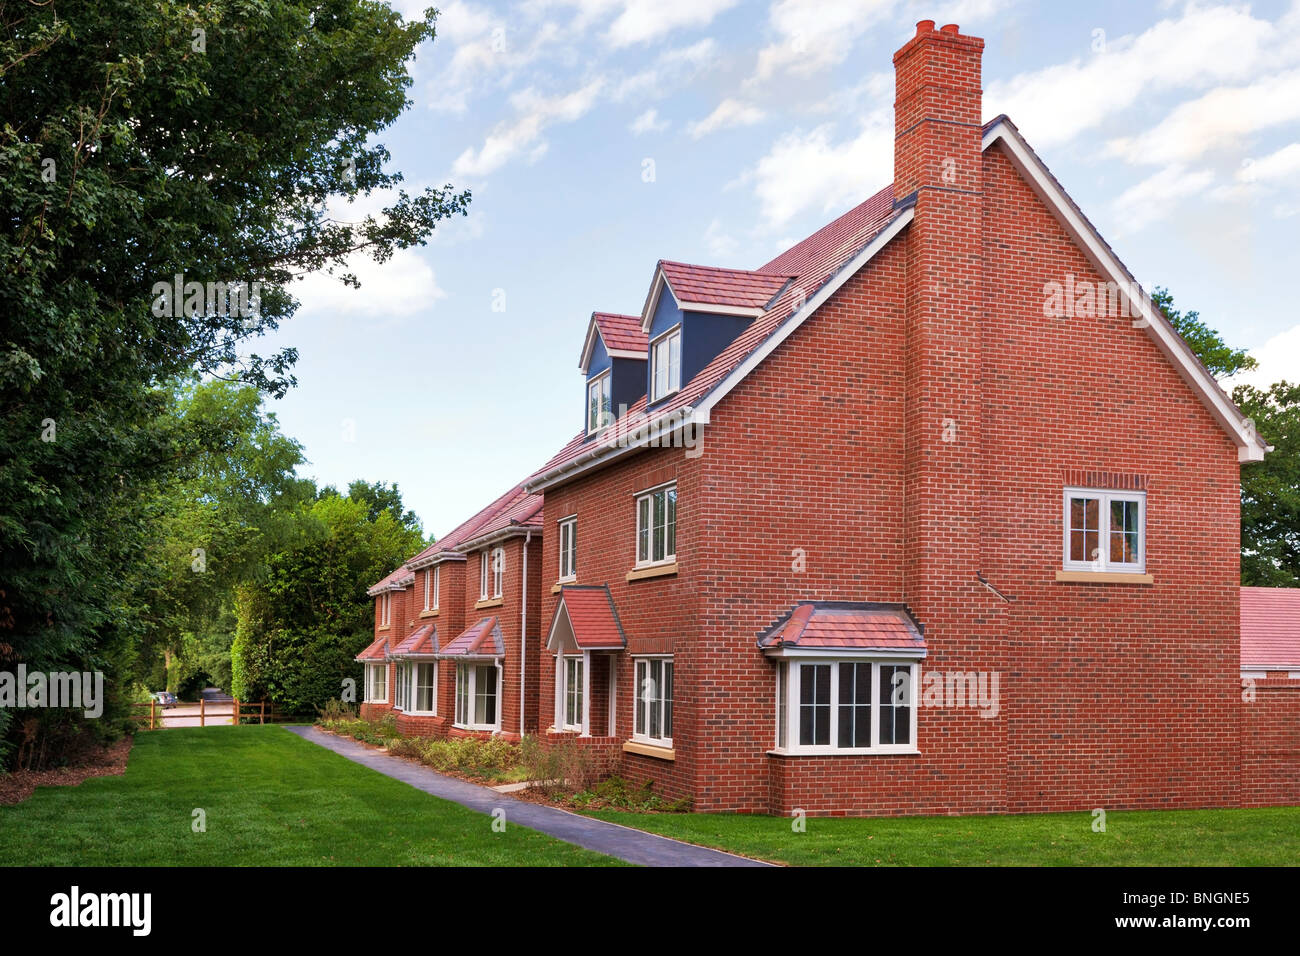 A row of empty new red brick houses on a modern UK housing estate development. - Stock Image